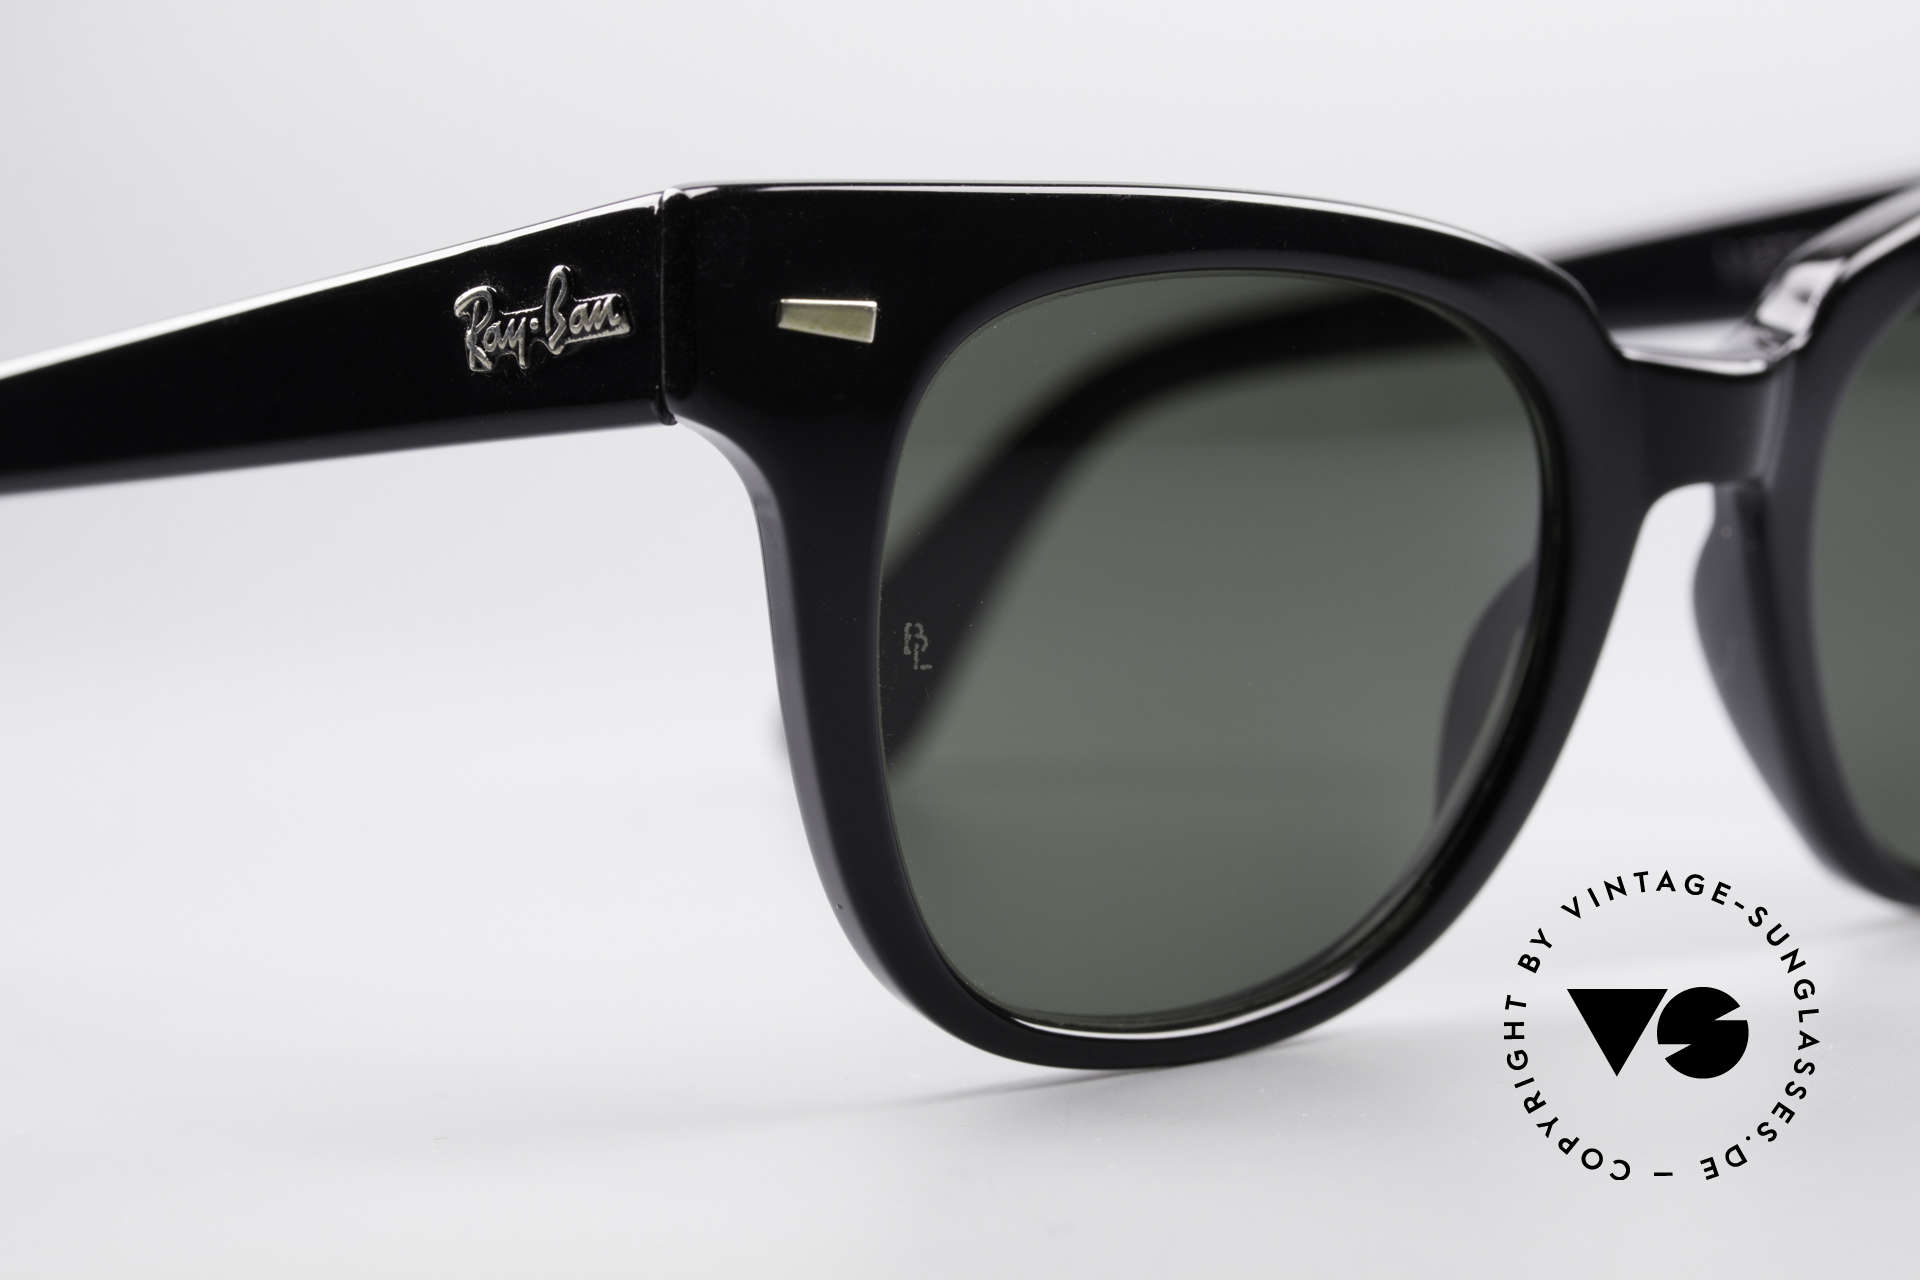 Ray Ban Meteor Old Vintage USA Sunglasses, with legendary B&L mineral lenses, 100% UV, Made for Men and Women